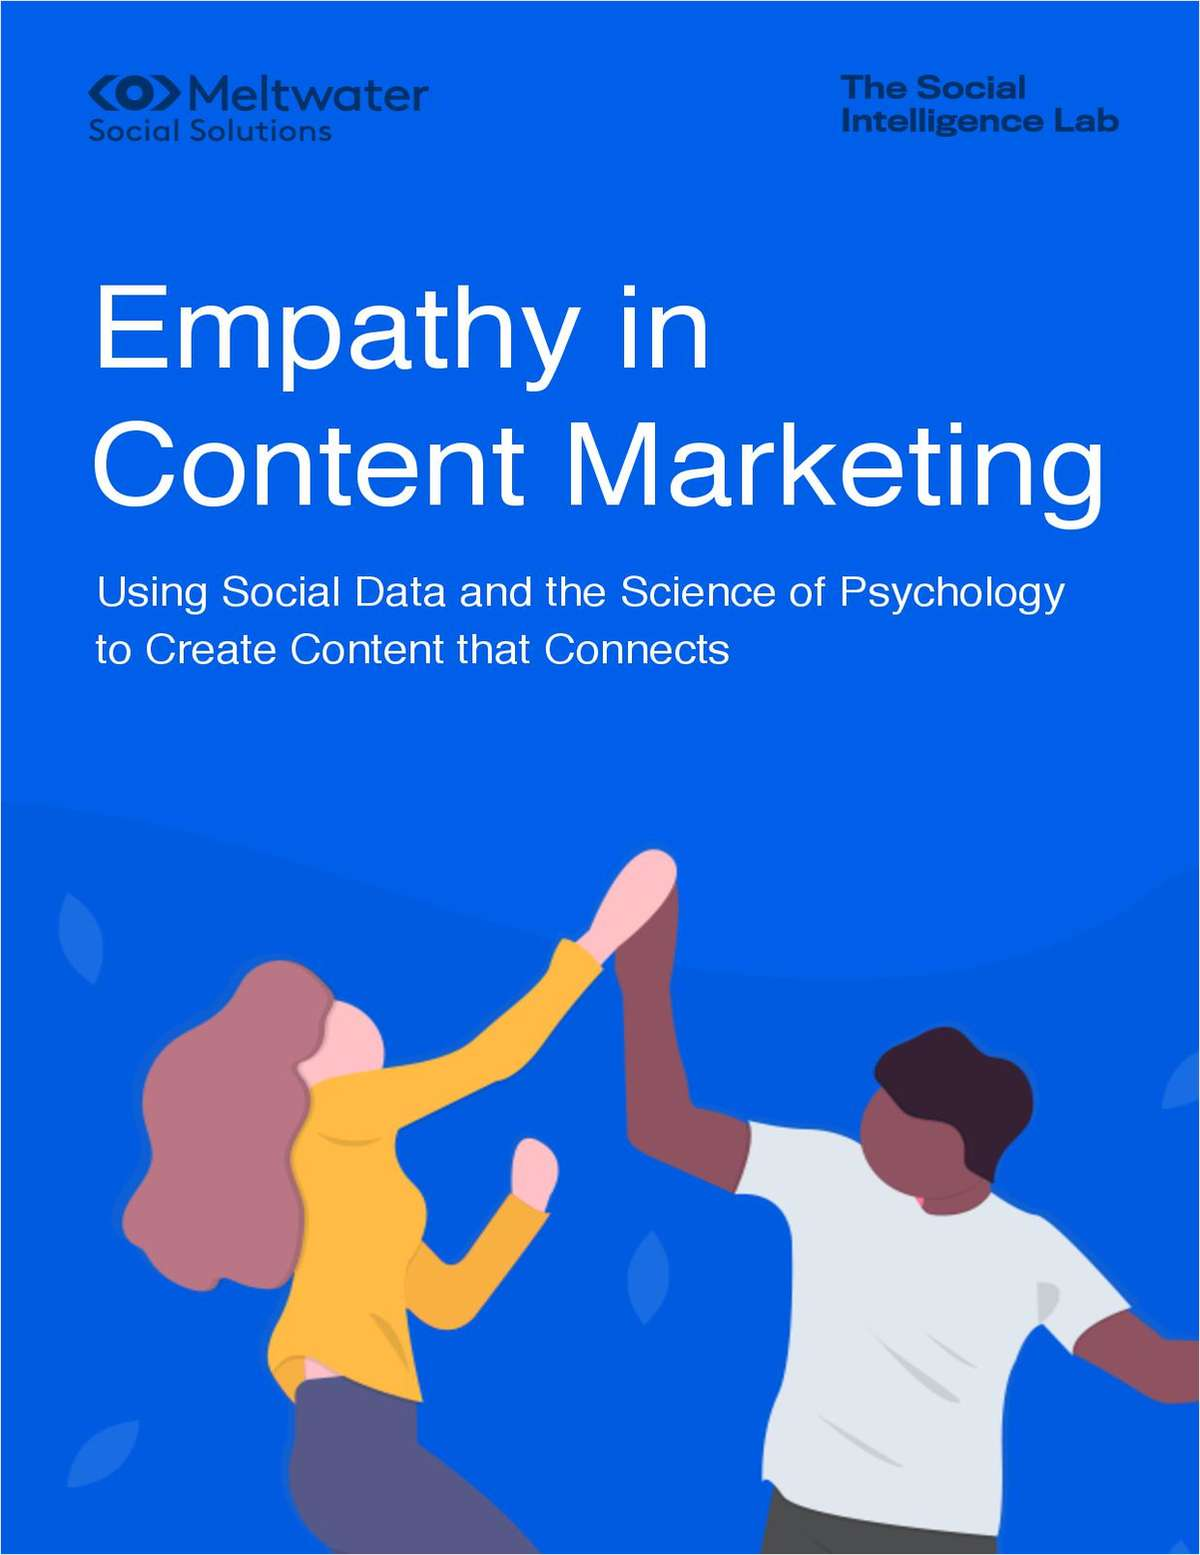 Empathy in Content Marketing